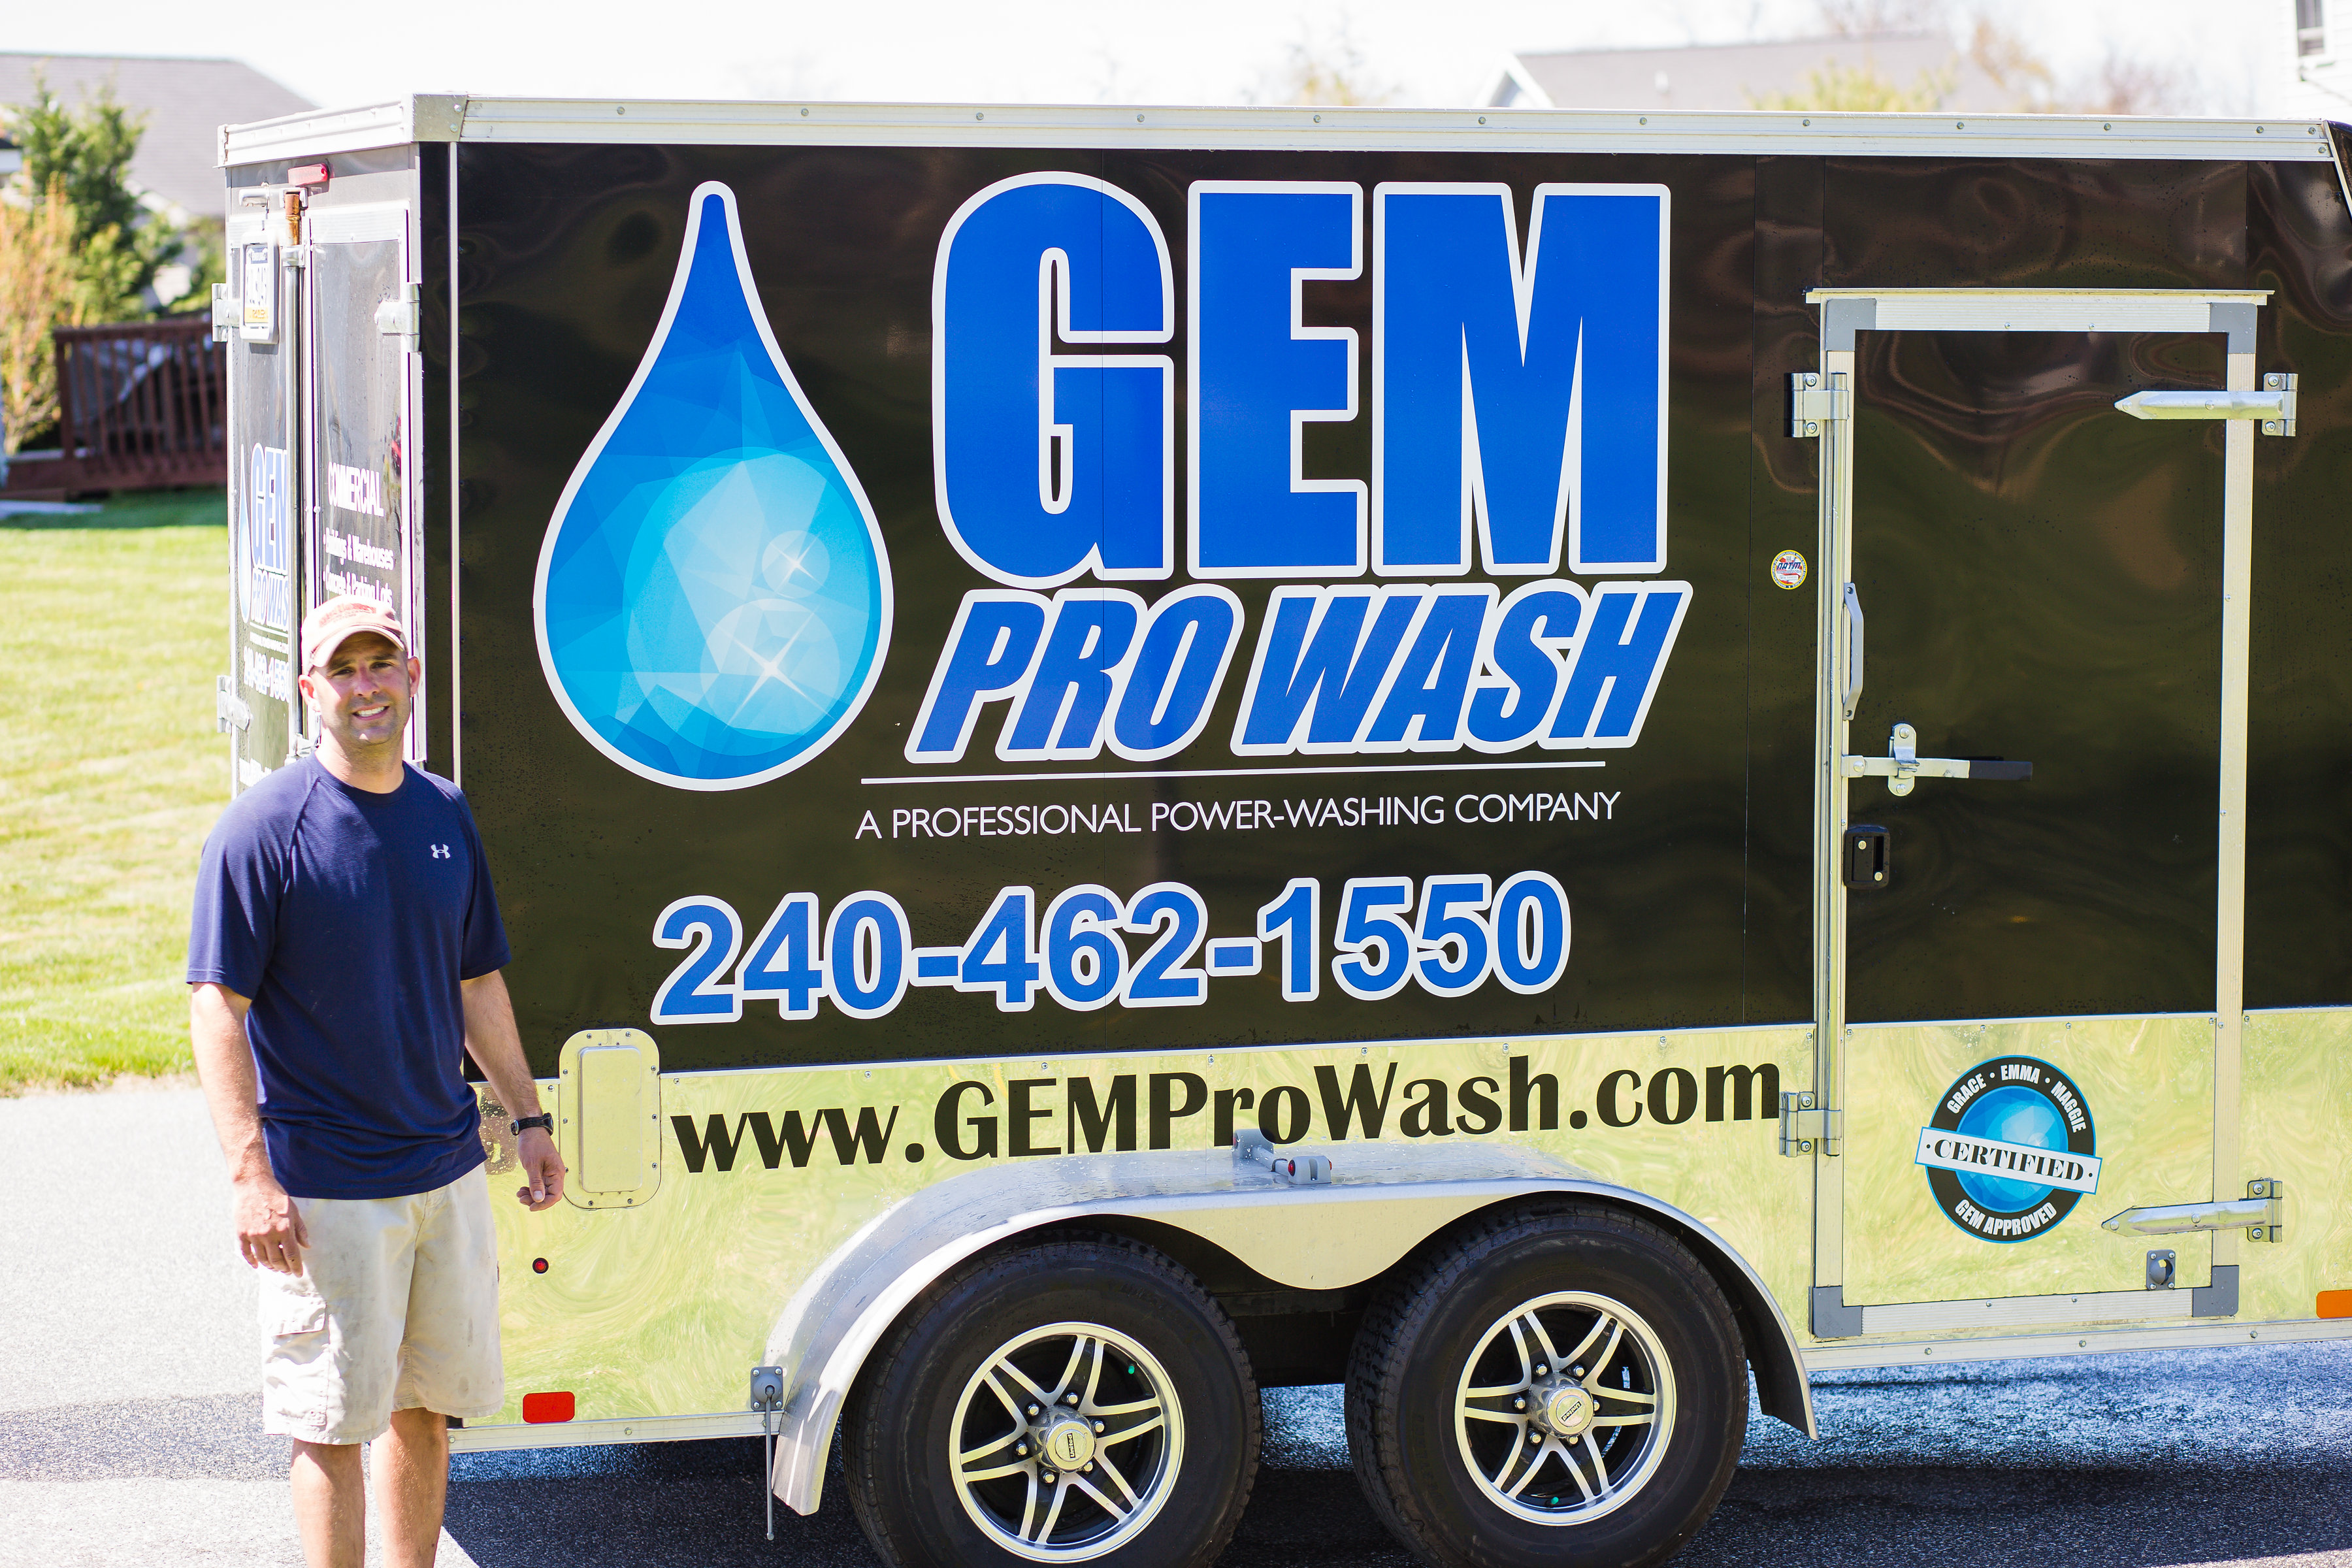 Gem Pro Wash | Pressure Washing Service in Martinsburg WV